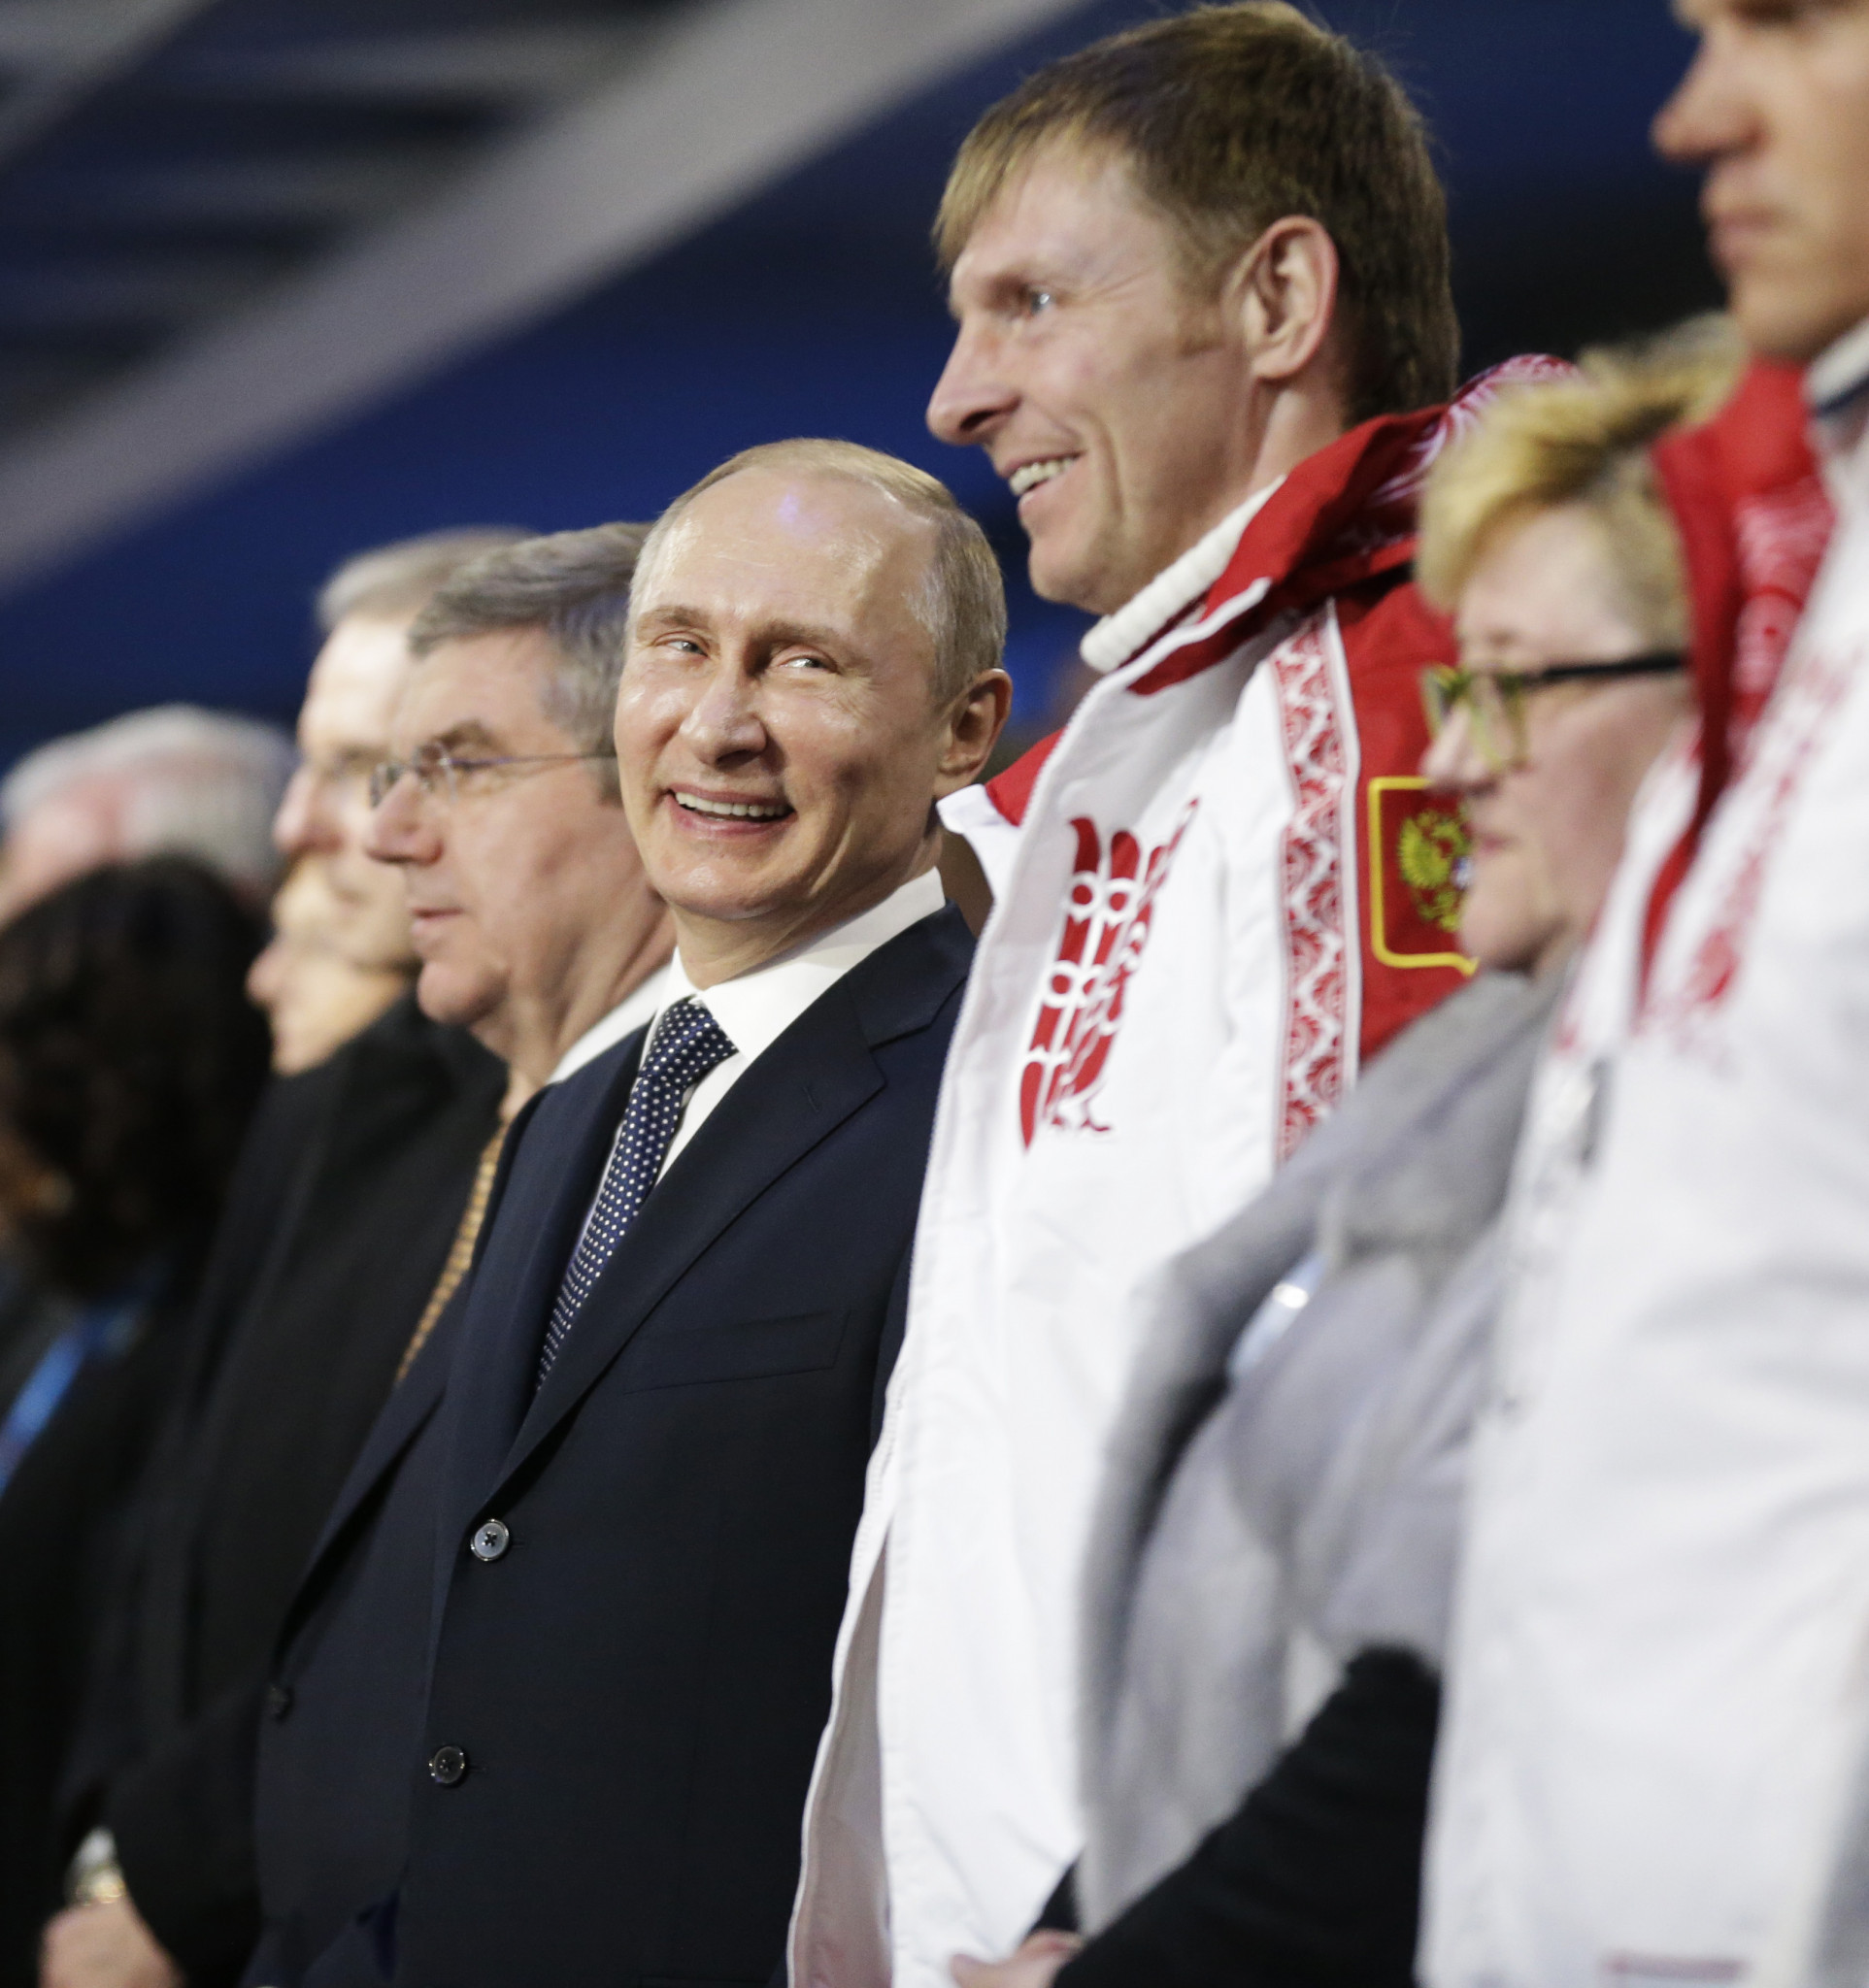 Alexander Zubkov pictured talking to Russian President Vladimir Putin at the Closing Ceremony of Sochi 2014 ©Getty Images